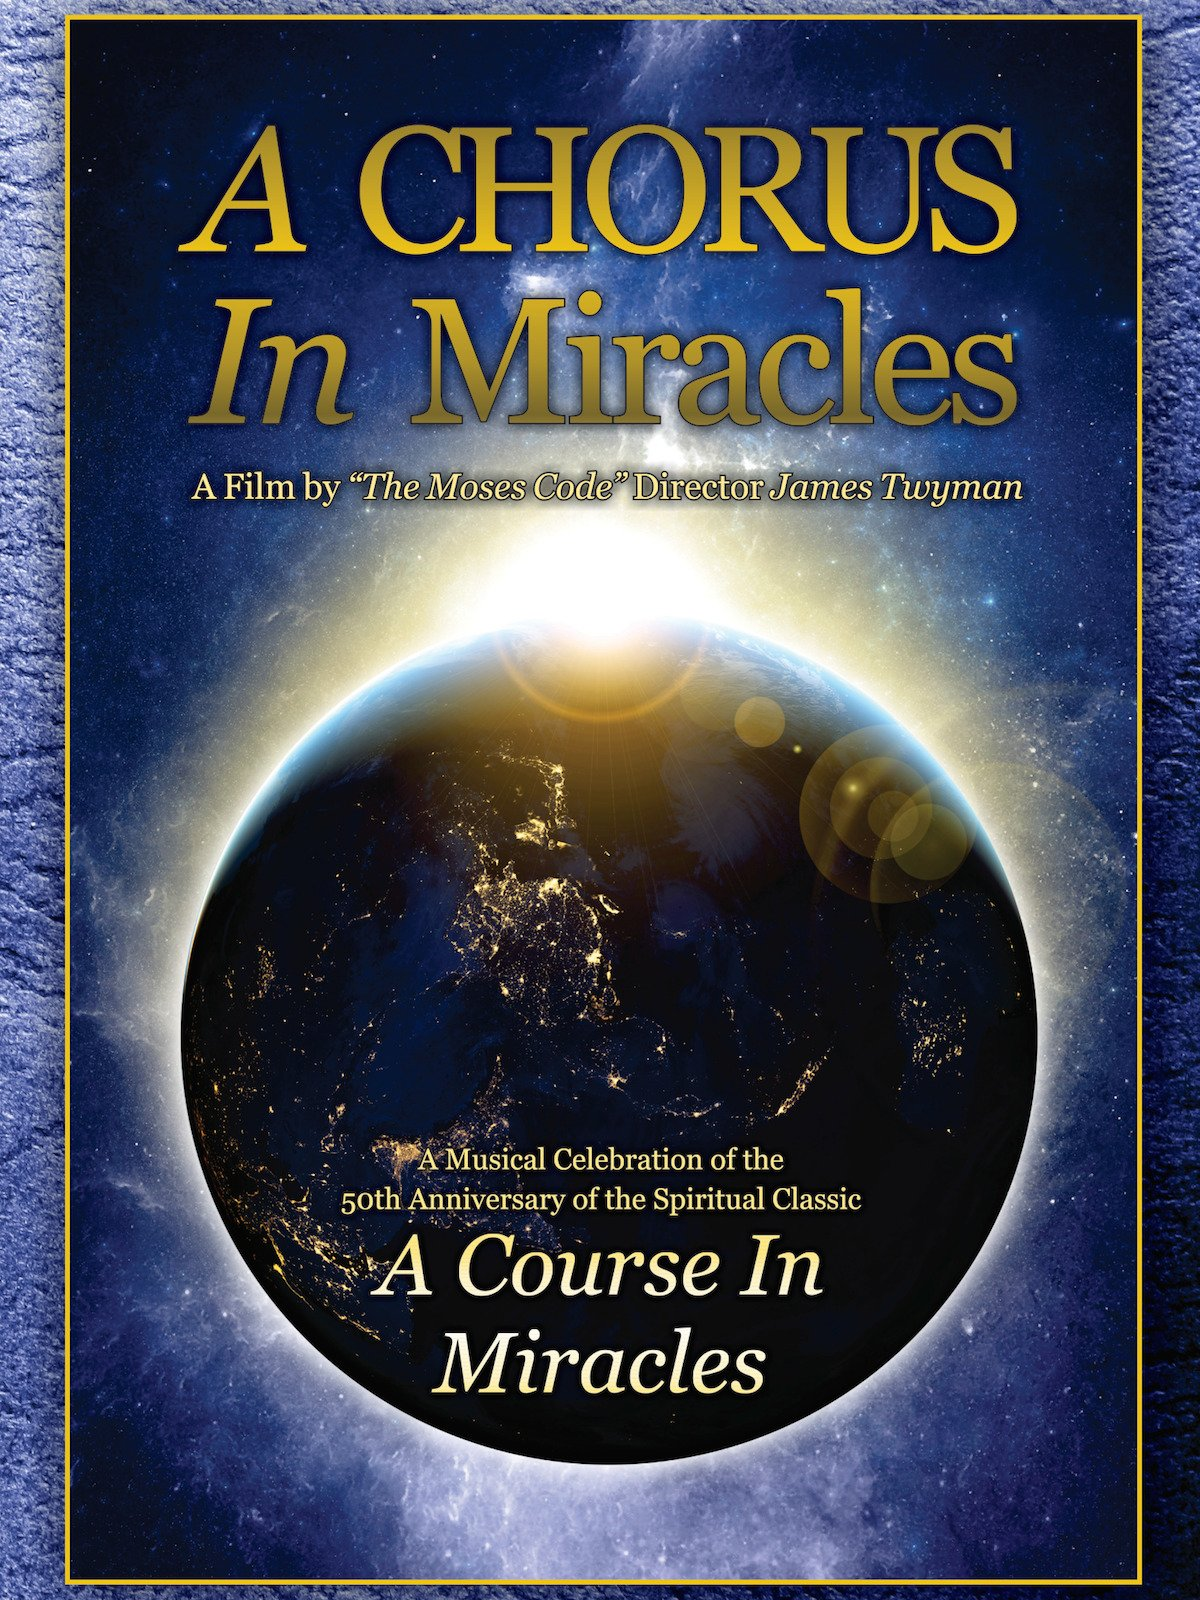 A Chorus in Miracles